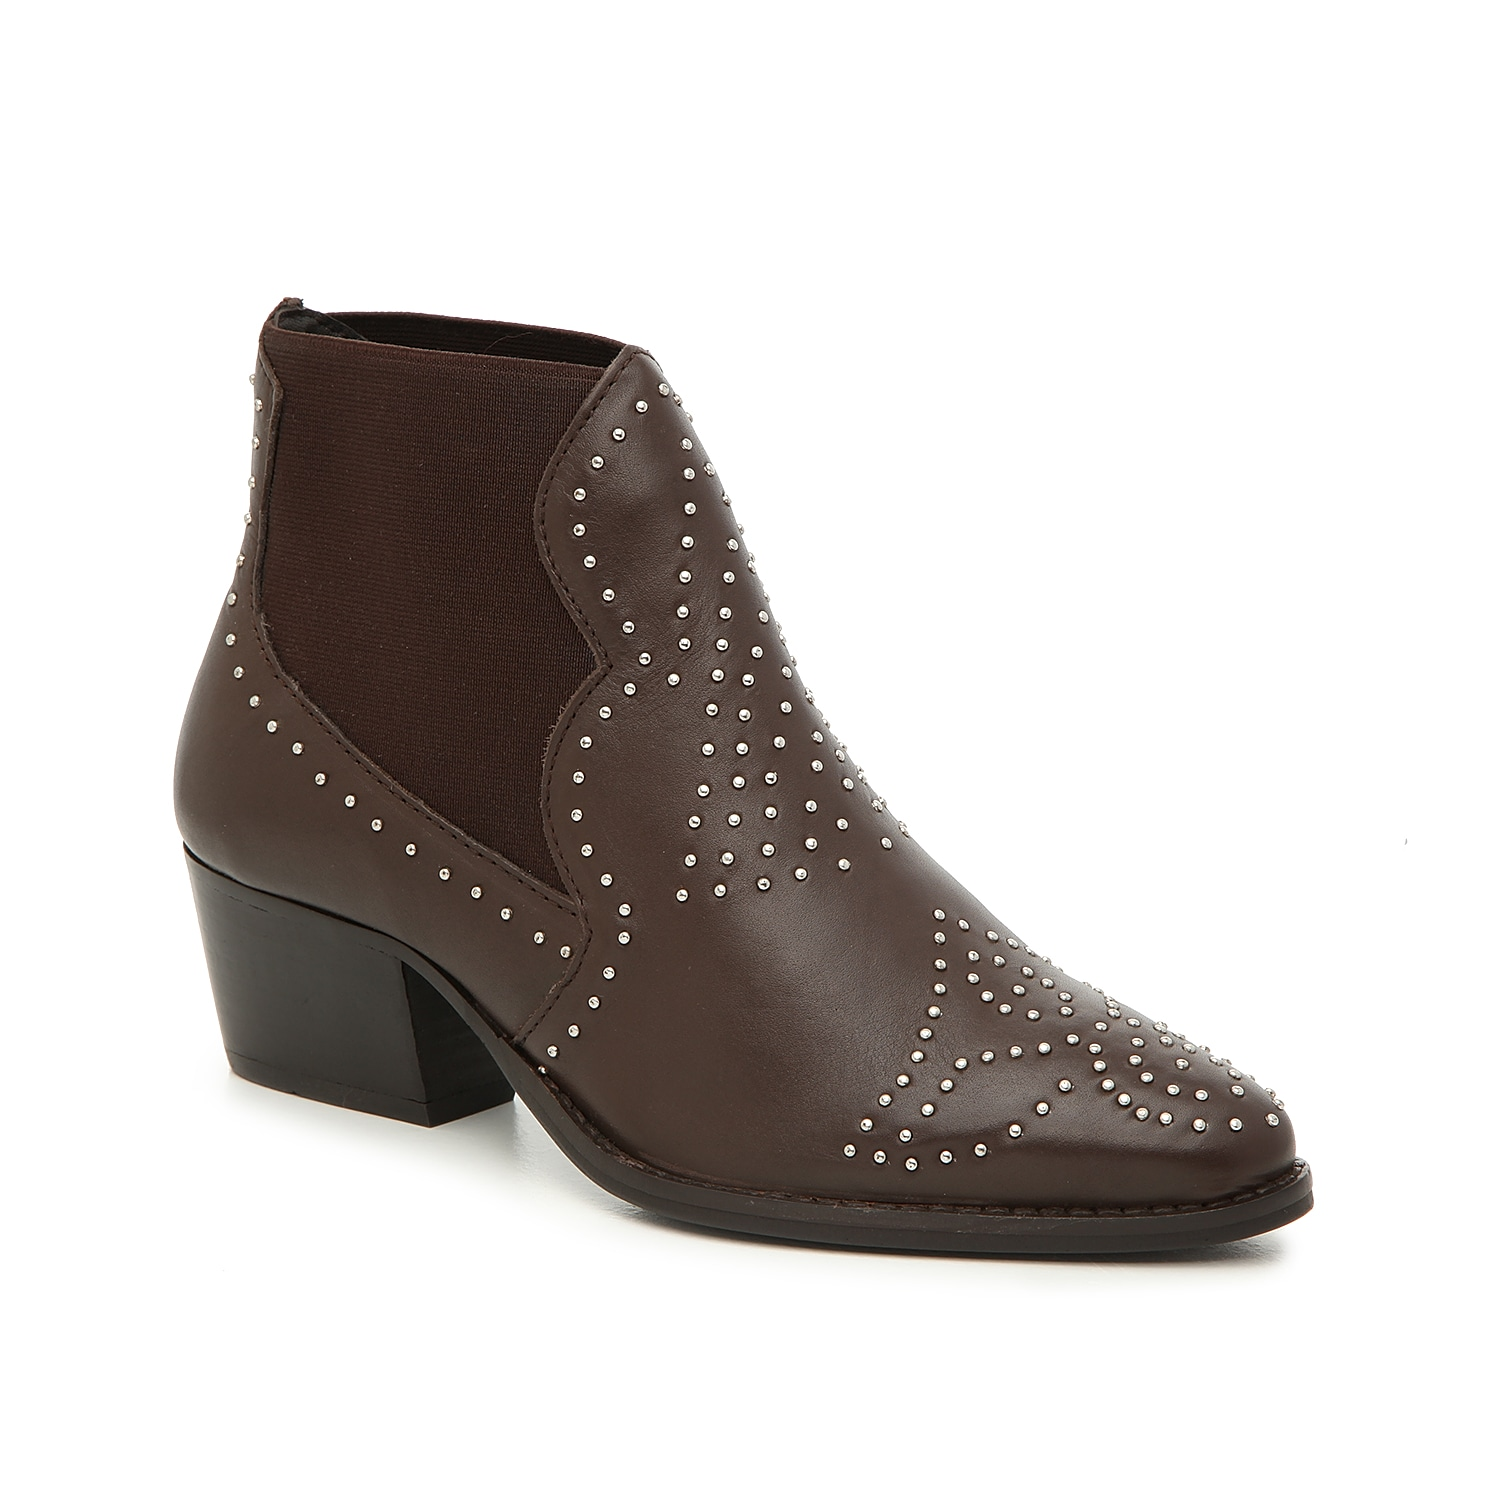 Make the Zach western chelsea boot from Charles by Charles David a major player in your rotating wardrobe. This low-top bootie is fashioned with dual side gores and stud details that will ensure a trendy finishing touch!